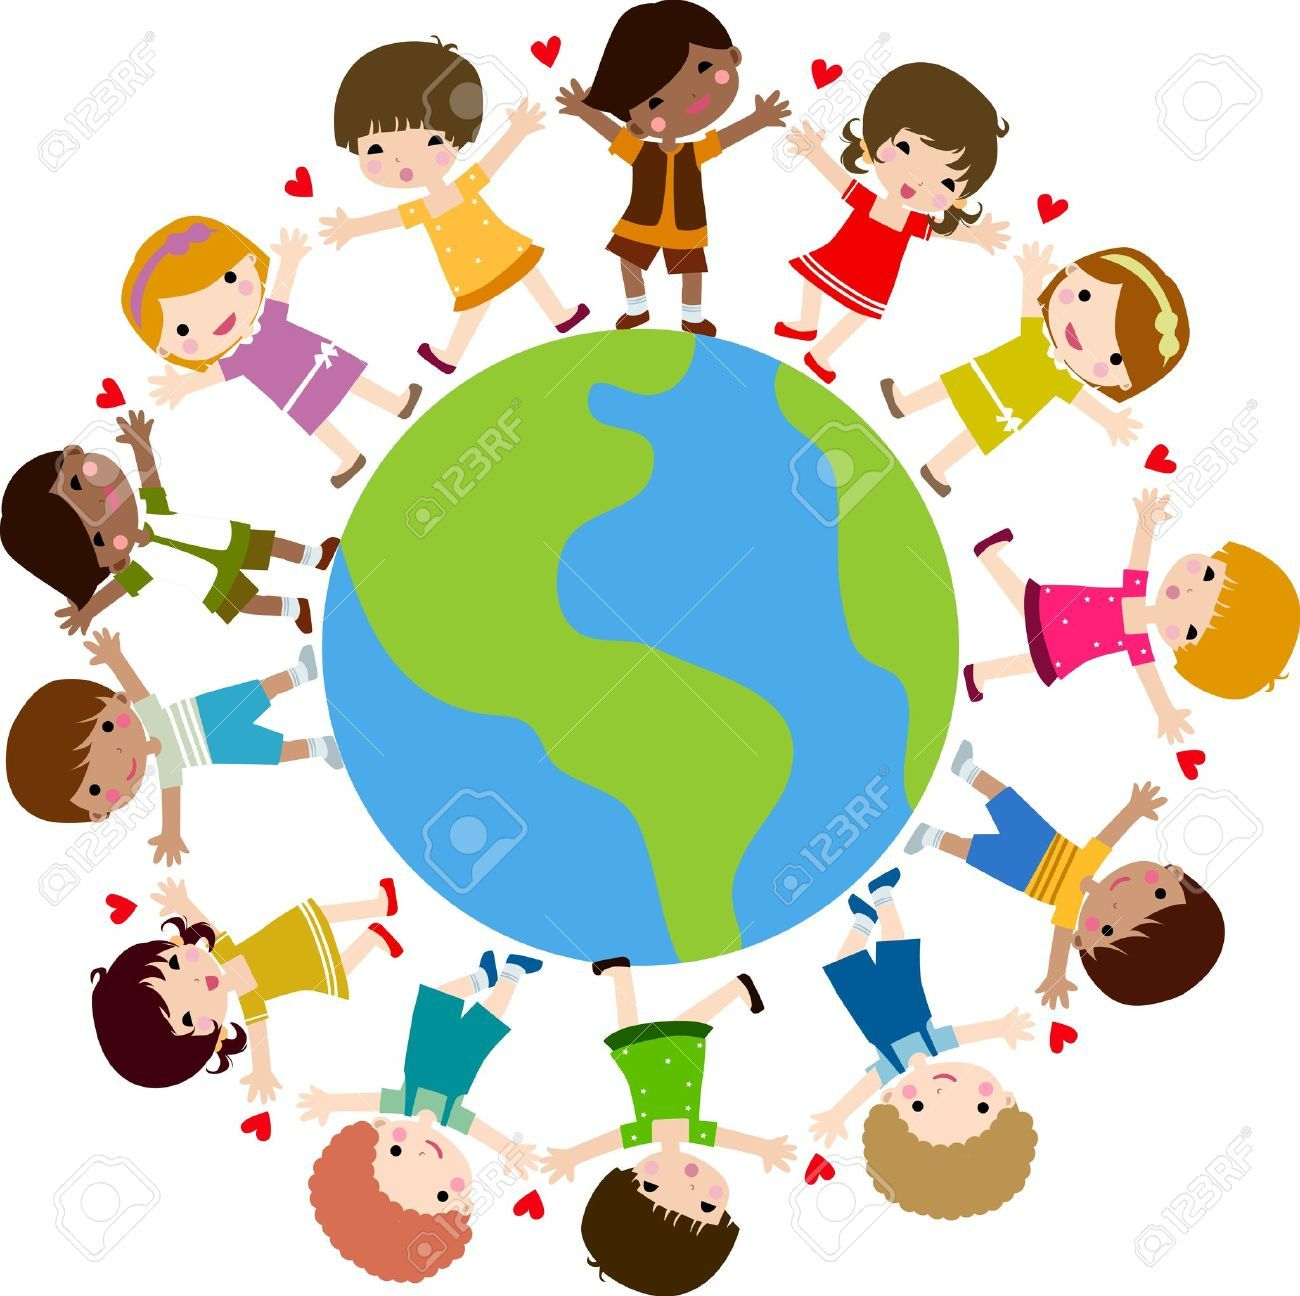 Children around the world clipart free 1 » Clipart Portal.